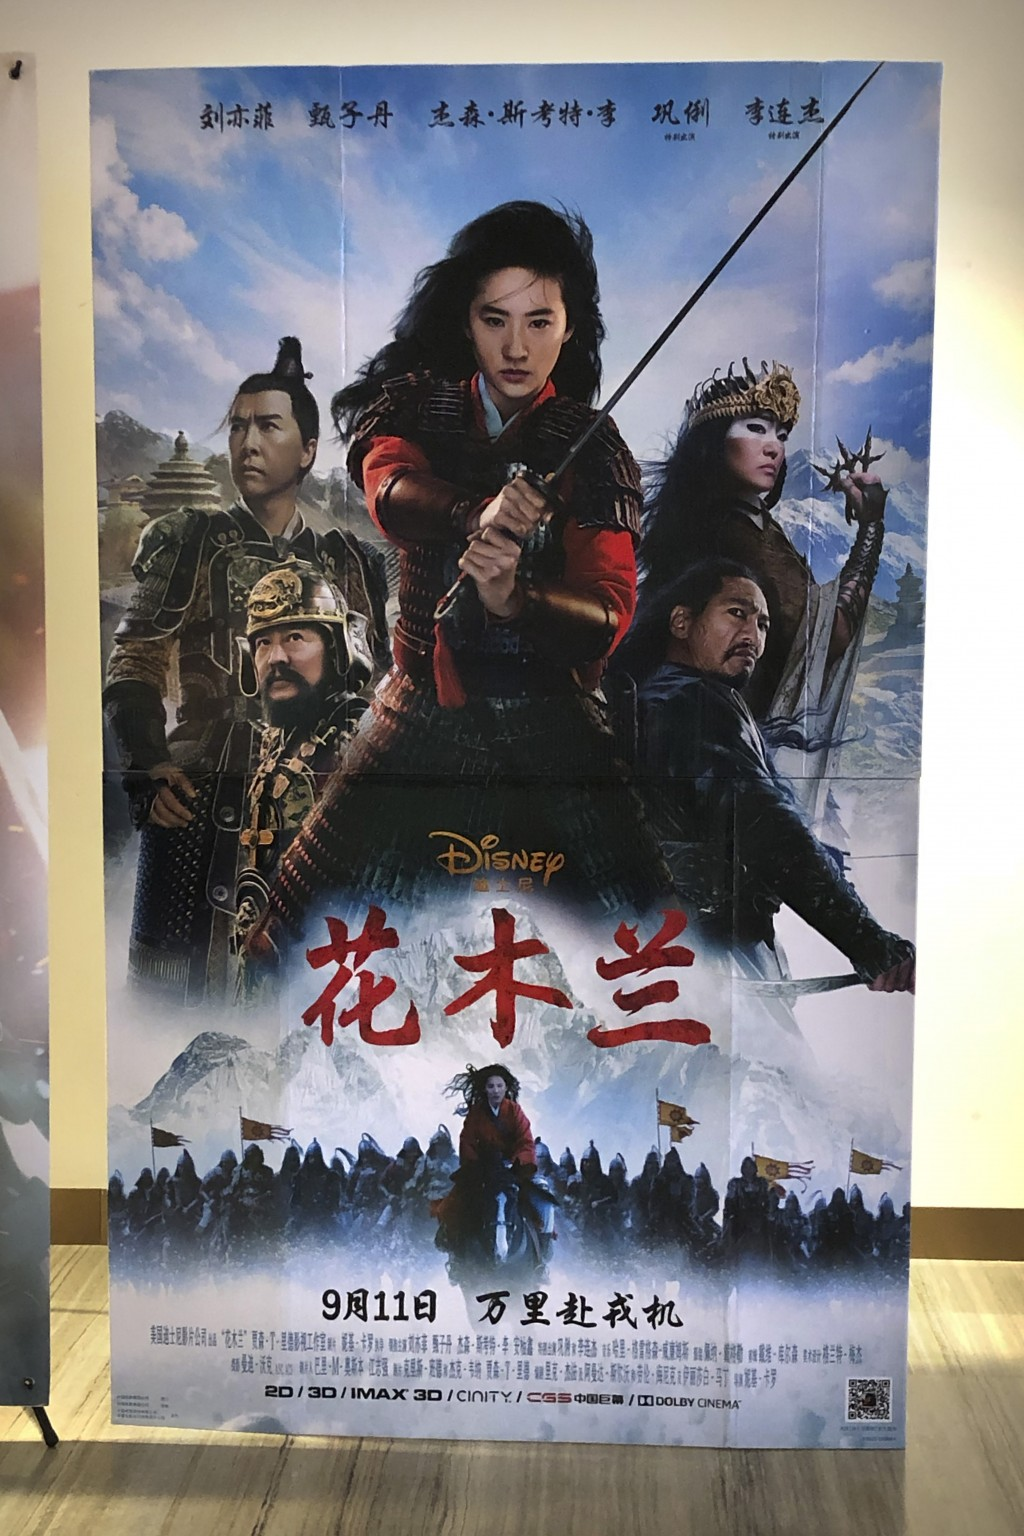 """A poster for the Disney movie """"Mulan"""" is displayed at a movie theater in Beijing on Sept. 11, 2020. The remake of """"Mulan"""" struck all the right chords ..."""